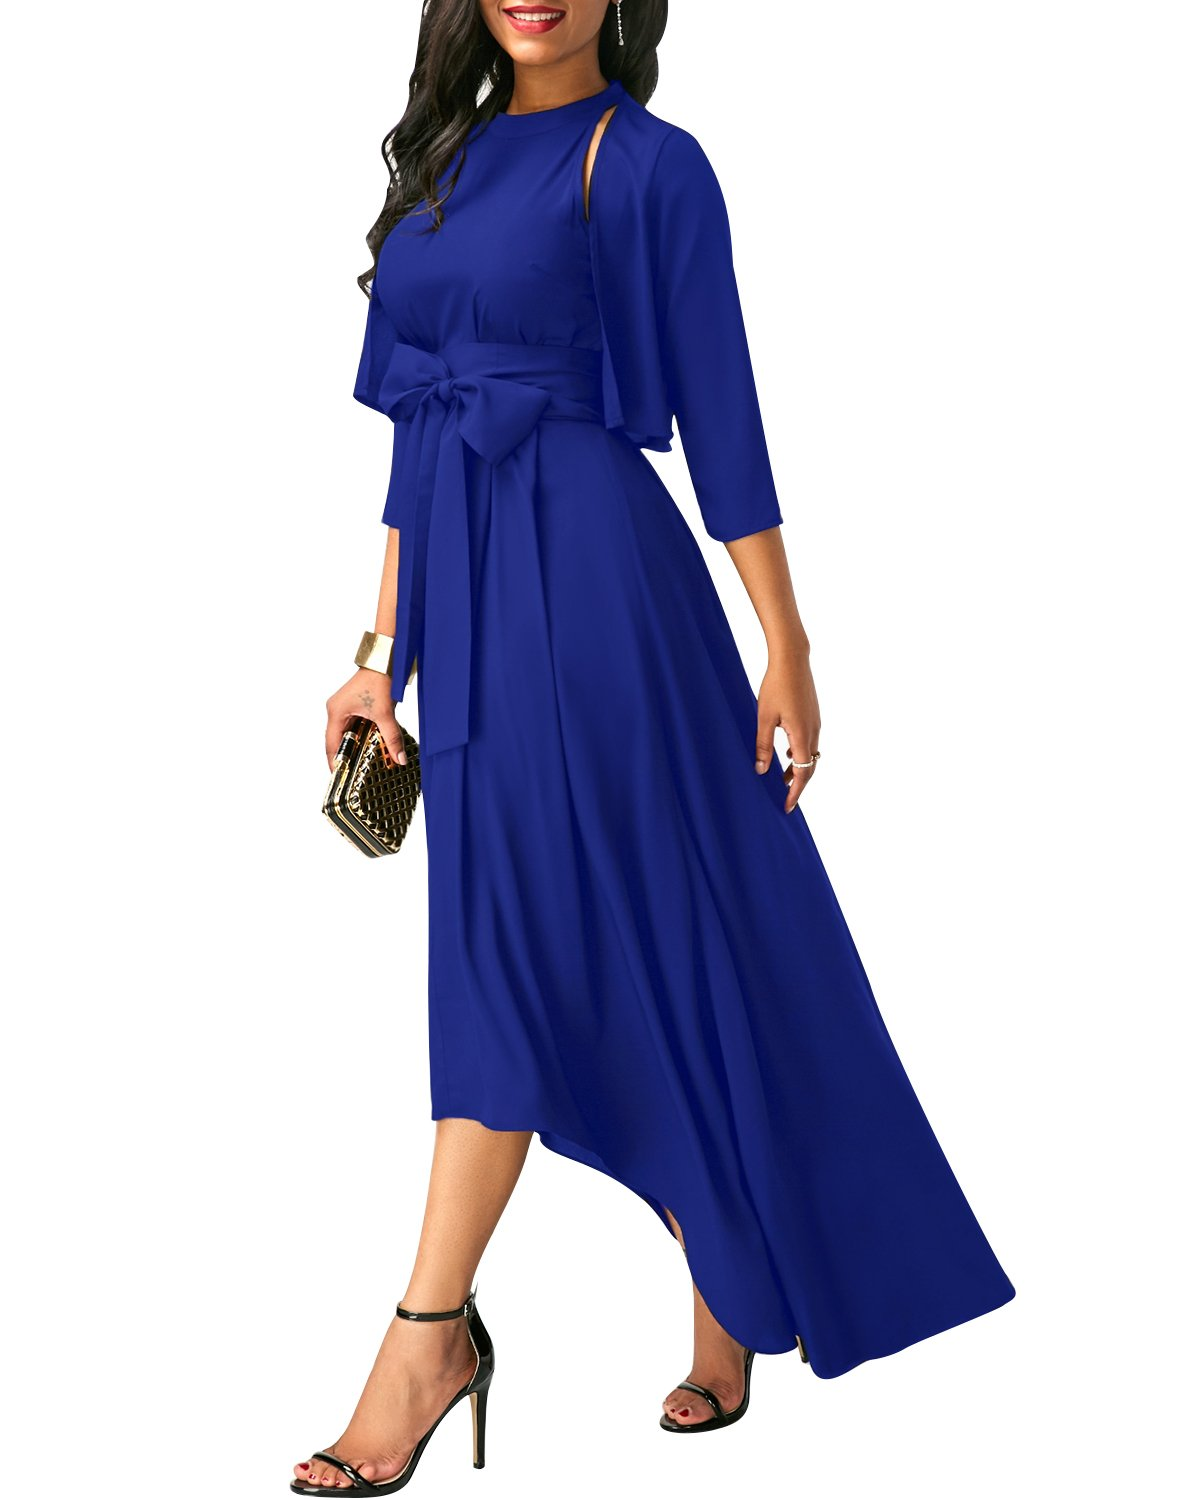 VIUVIU Bridesmaid Dress,Wedding Party Floral Ruched Dress Flowy Shift Dress with Jacket Blue XL